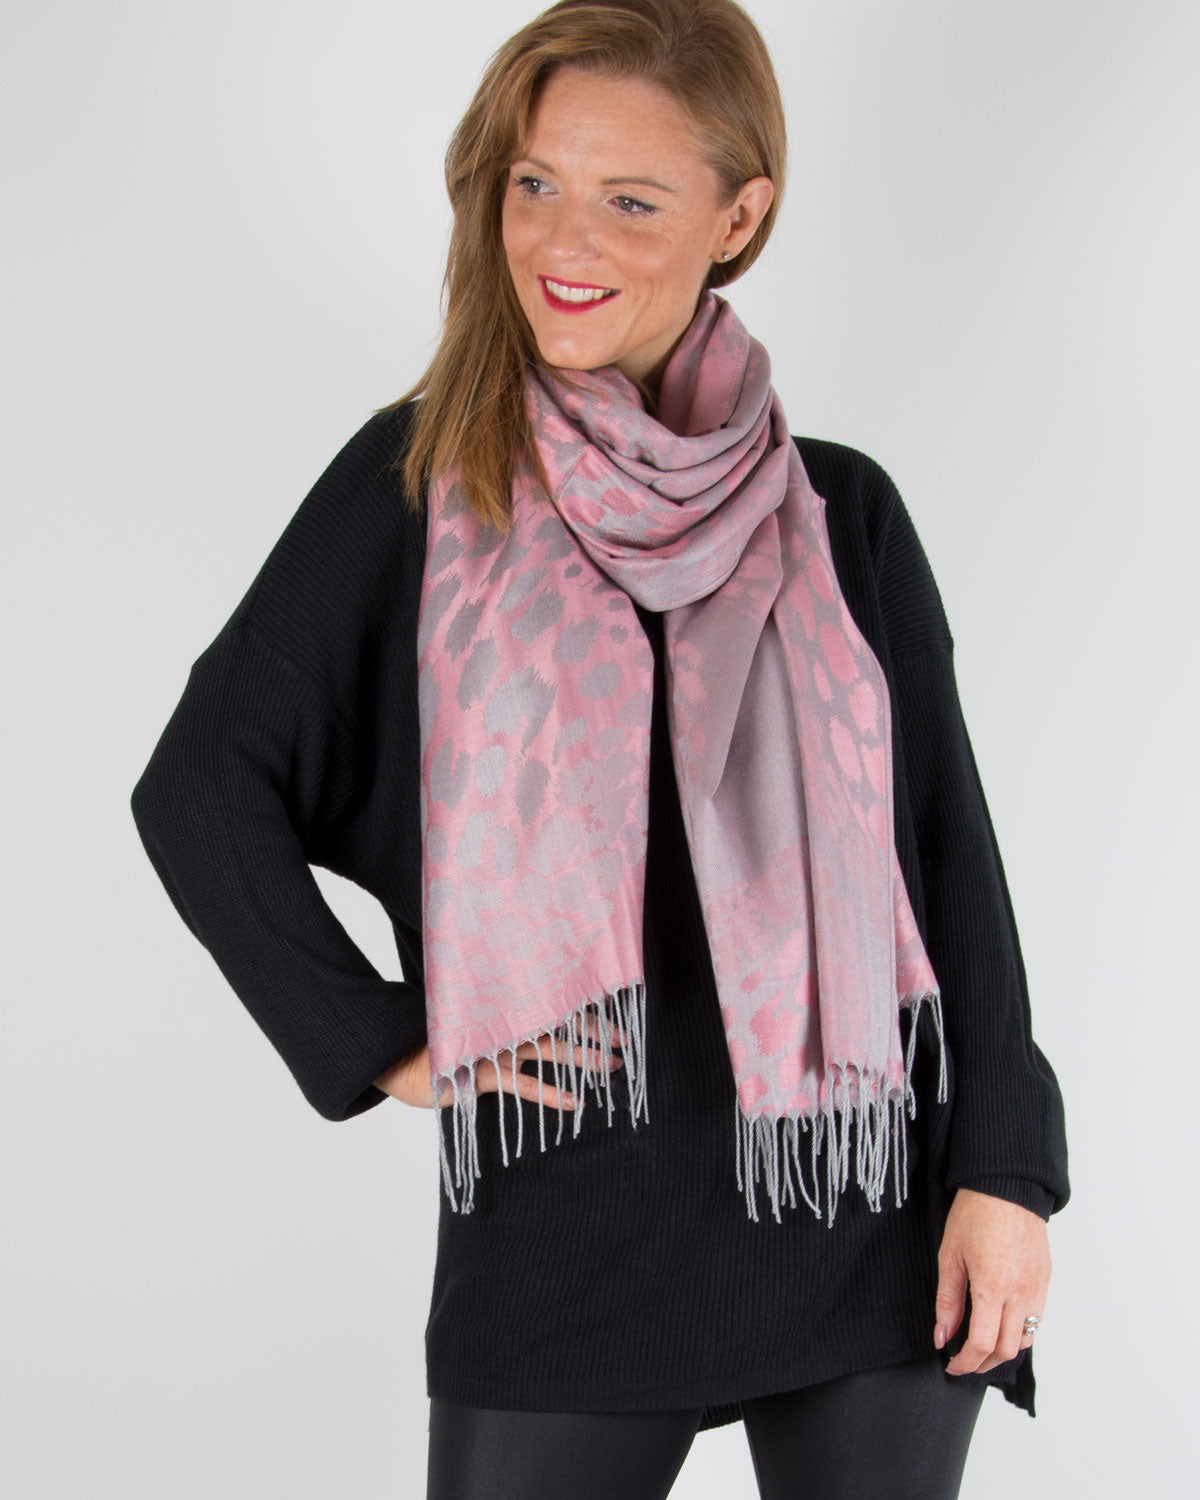 an image showing an animal print silver and pink pashmina